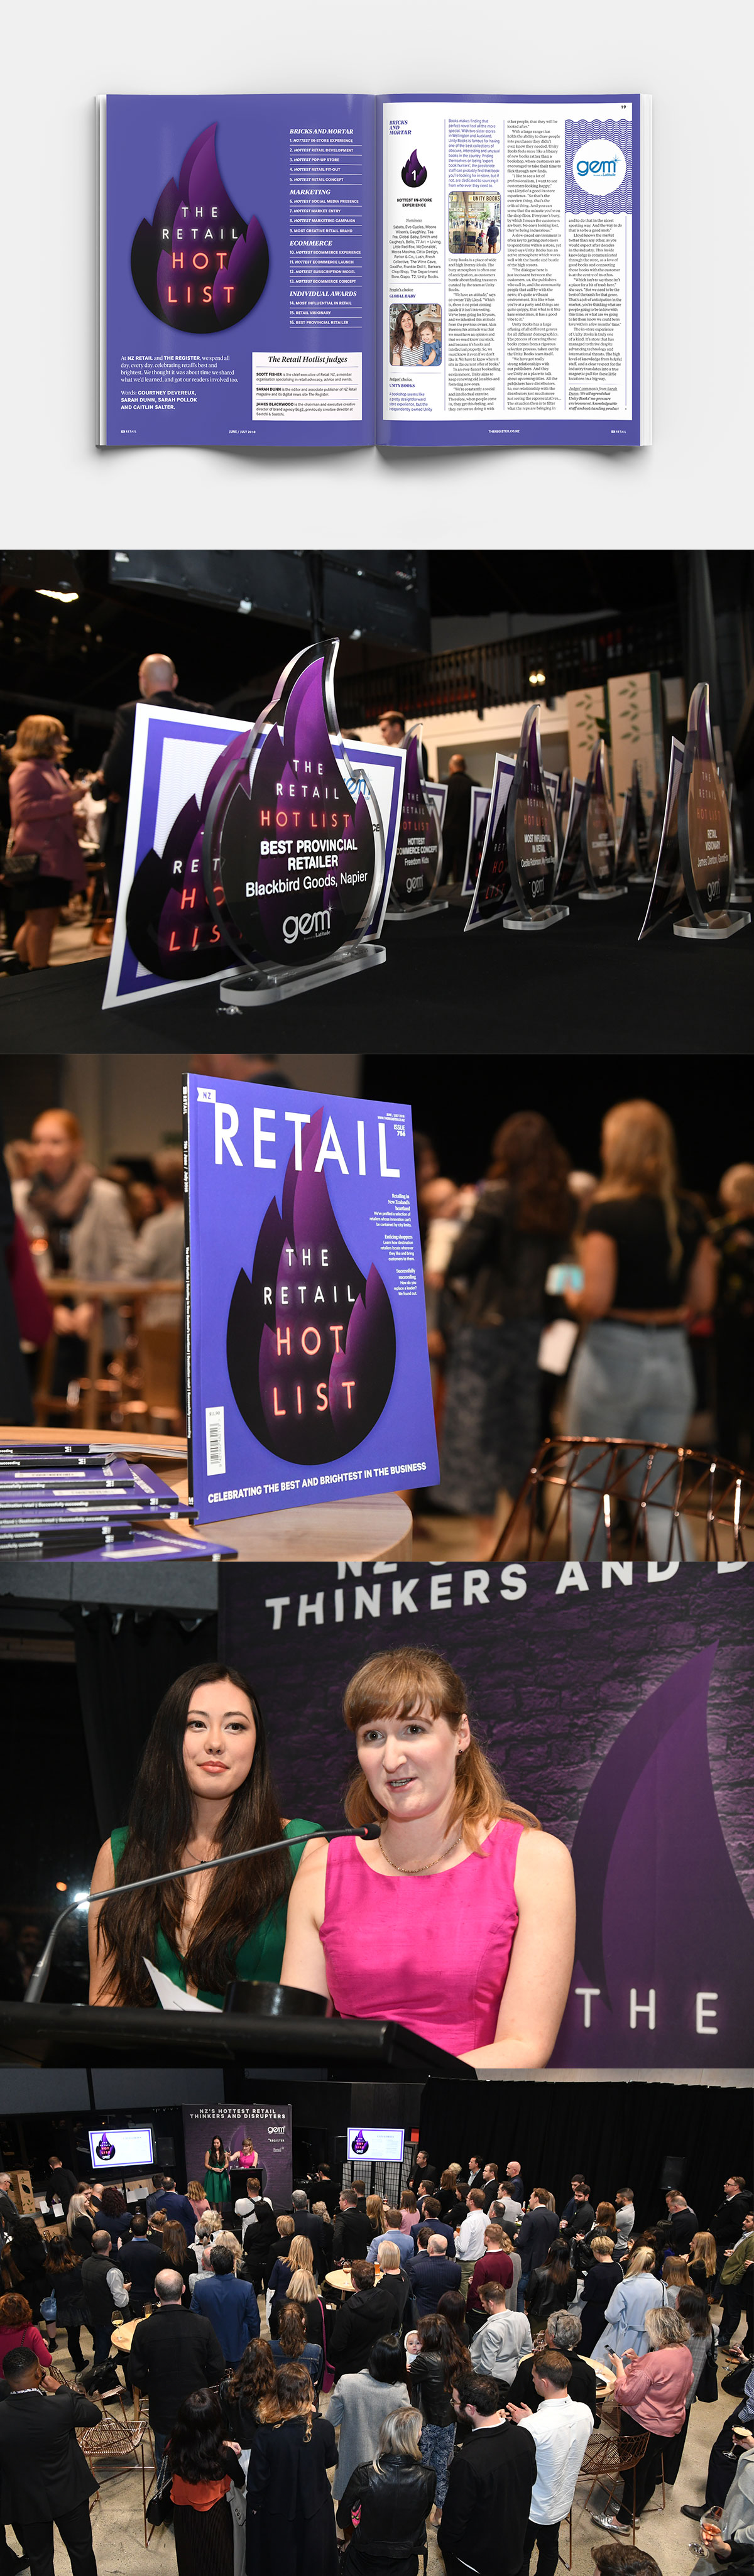 The Retail Hot List